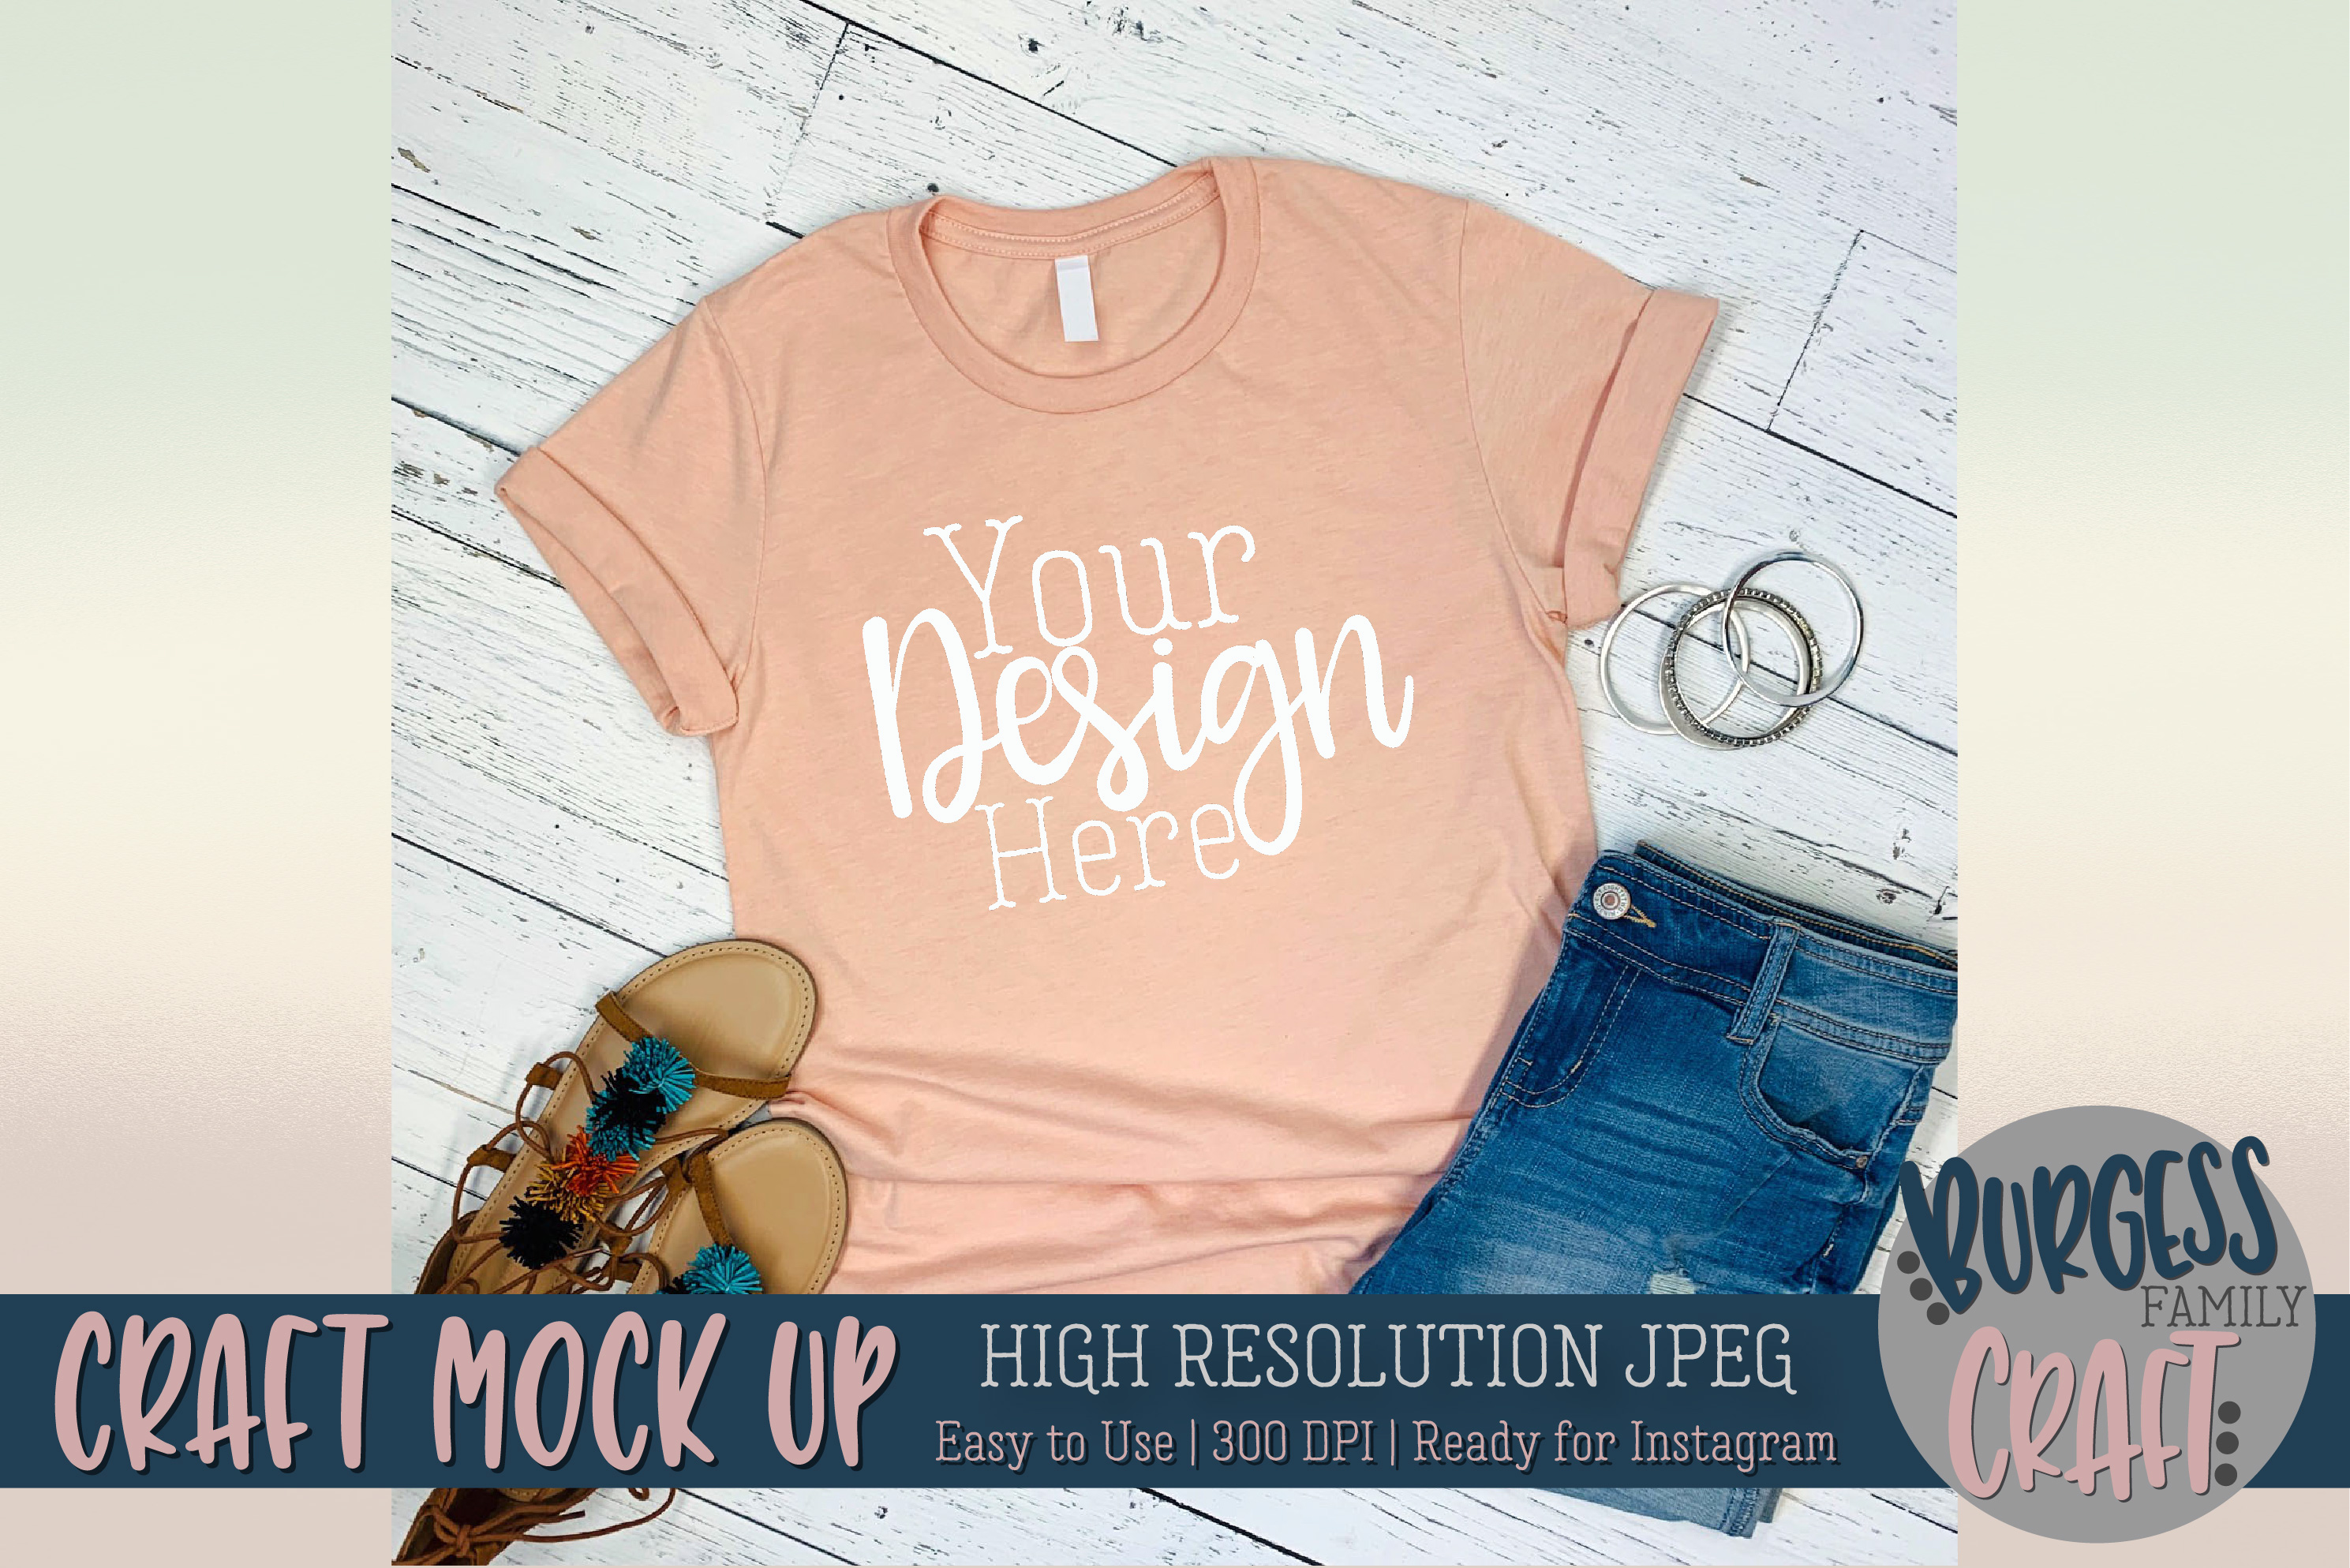 Peach t-shirt 3001 Craft mock up | High Res JPEG example image 1